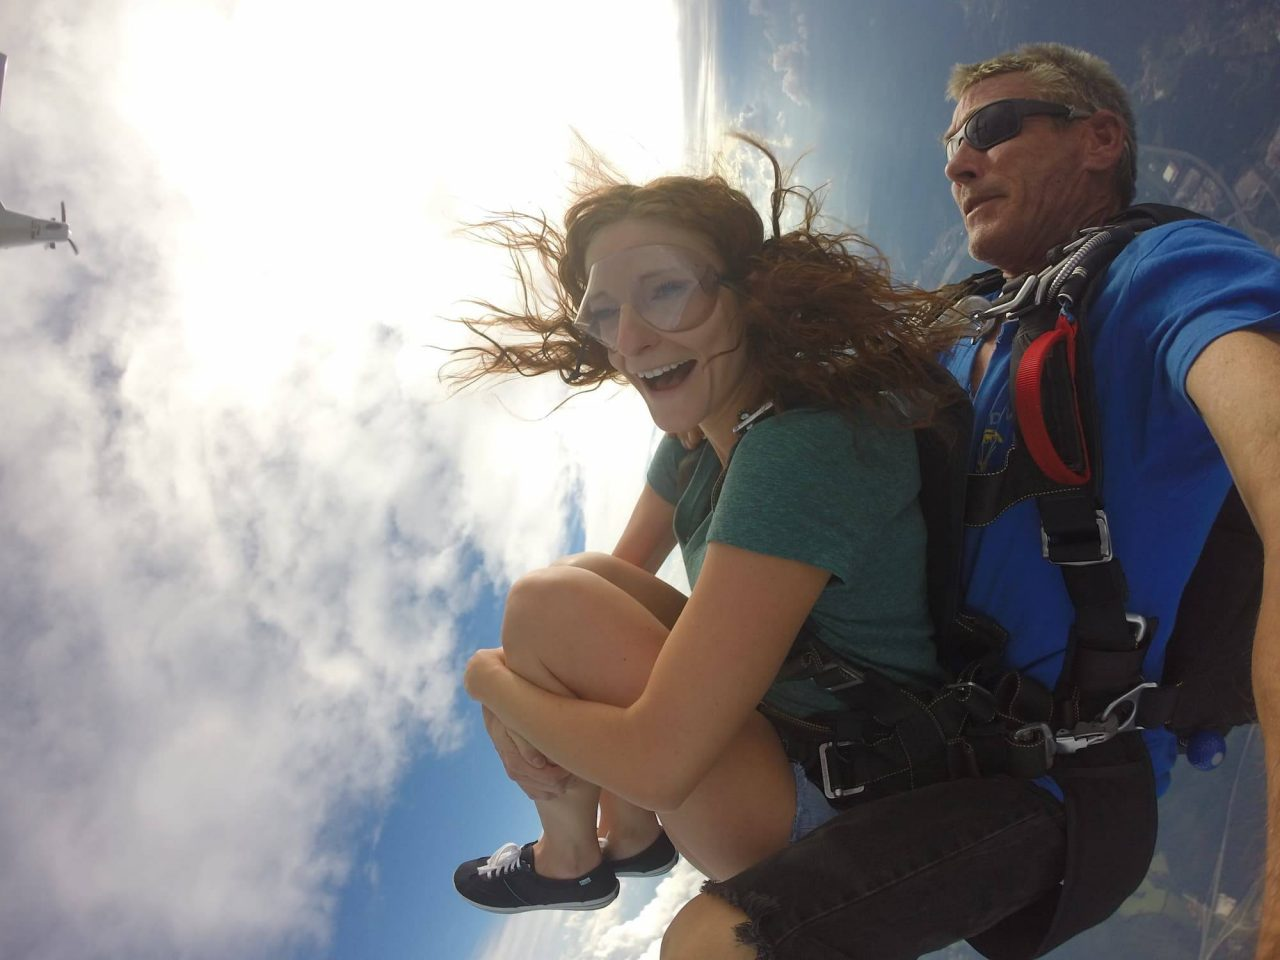 Women in green shirt takes the leap out of the Chattanooga Skydiving Company airplane